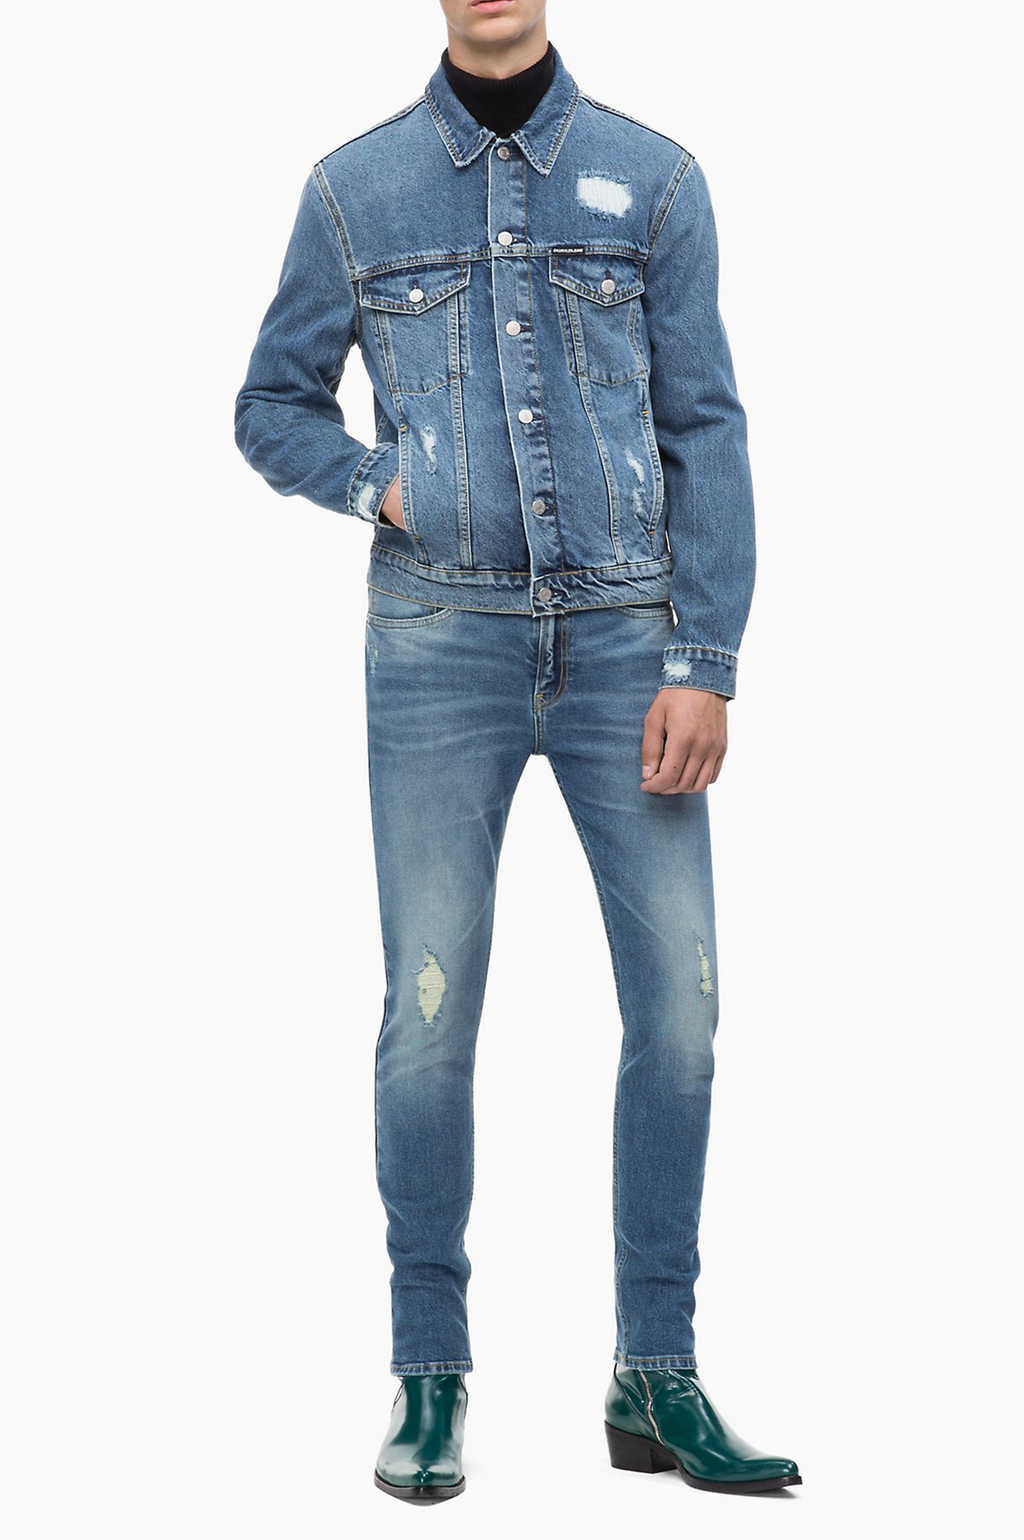 CALVIN KLEIN JEANS MENS DESTRUCTED TRUCKER DENIM JACKET